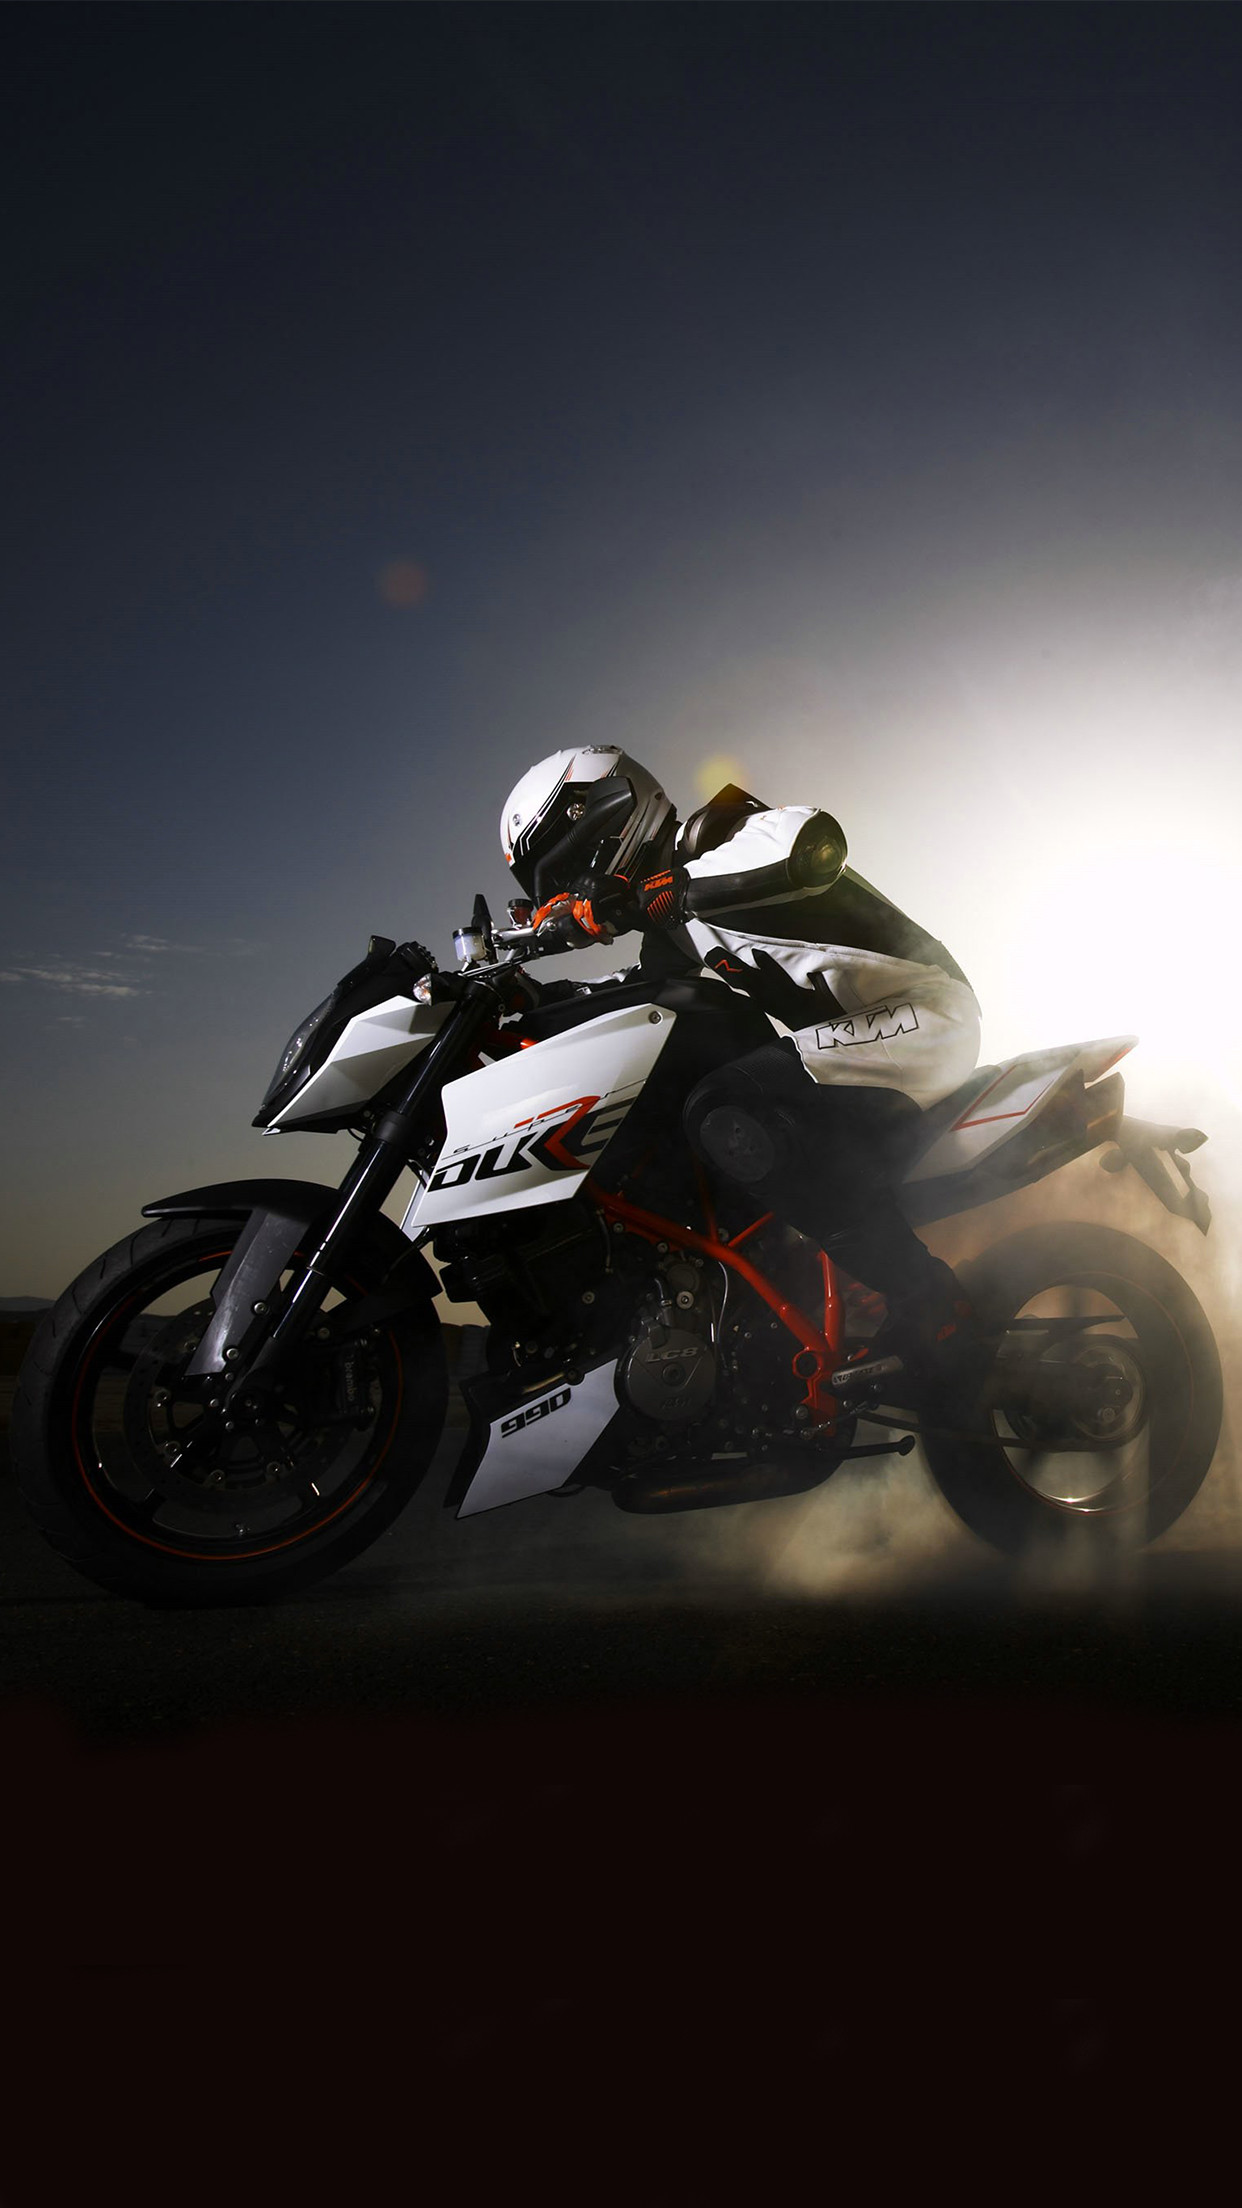 KTM iphone 6 full hd bike latest wallpapers free download iPhone .